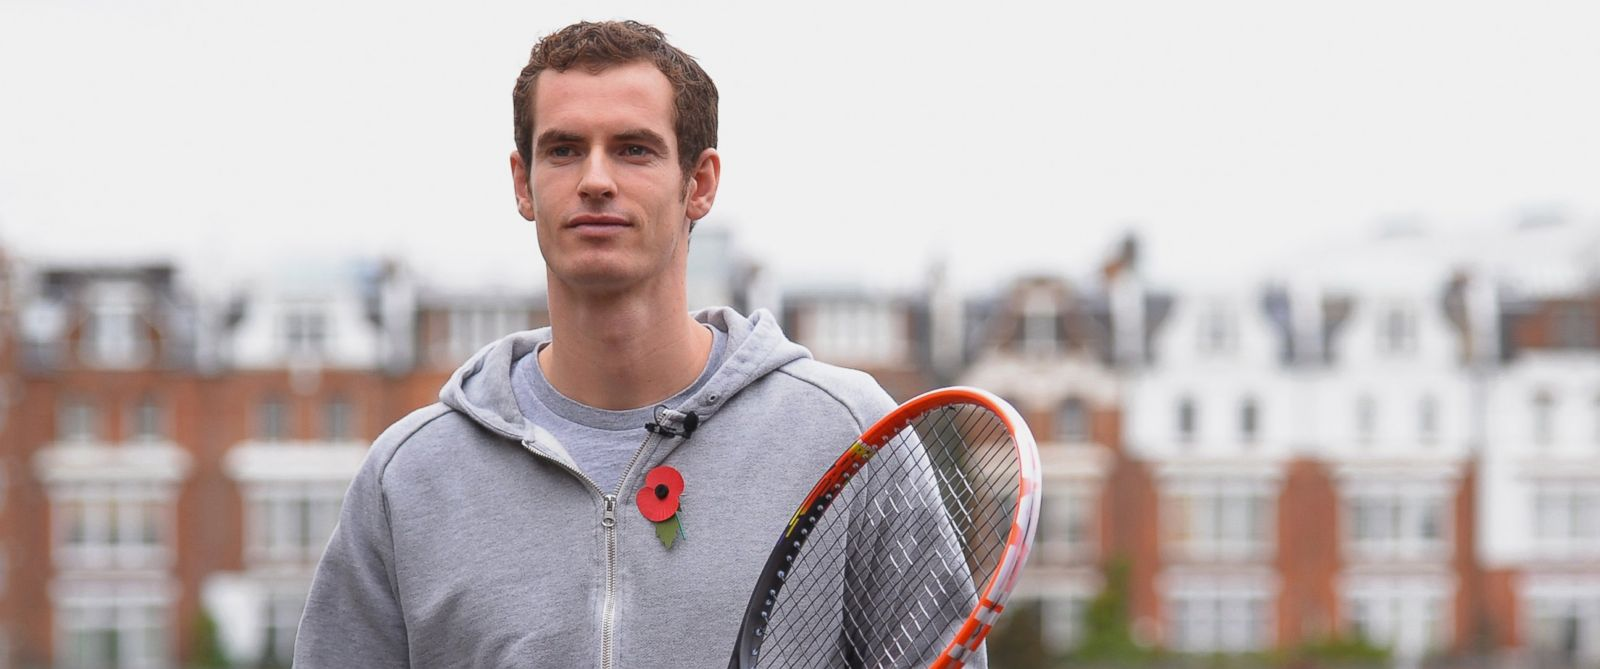 PHOTO: Andy Murray of Great Britain during the new Head Graphene Radical tennis racket launch at Queens Club on October 31, 2013 in London, England.